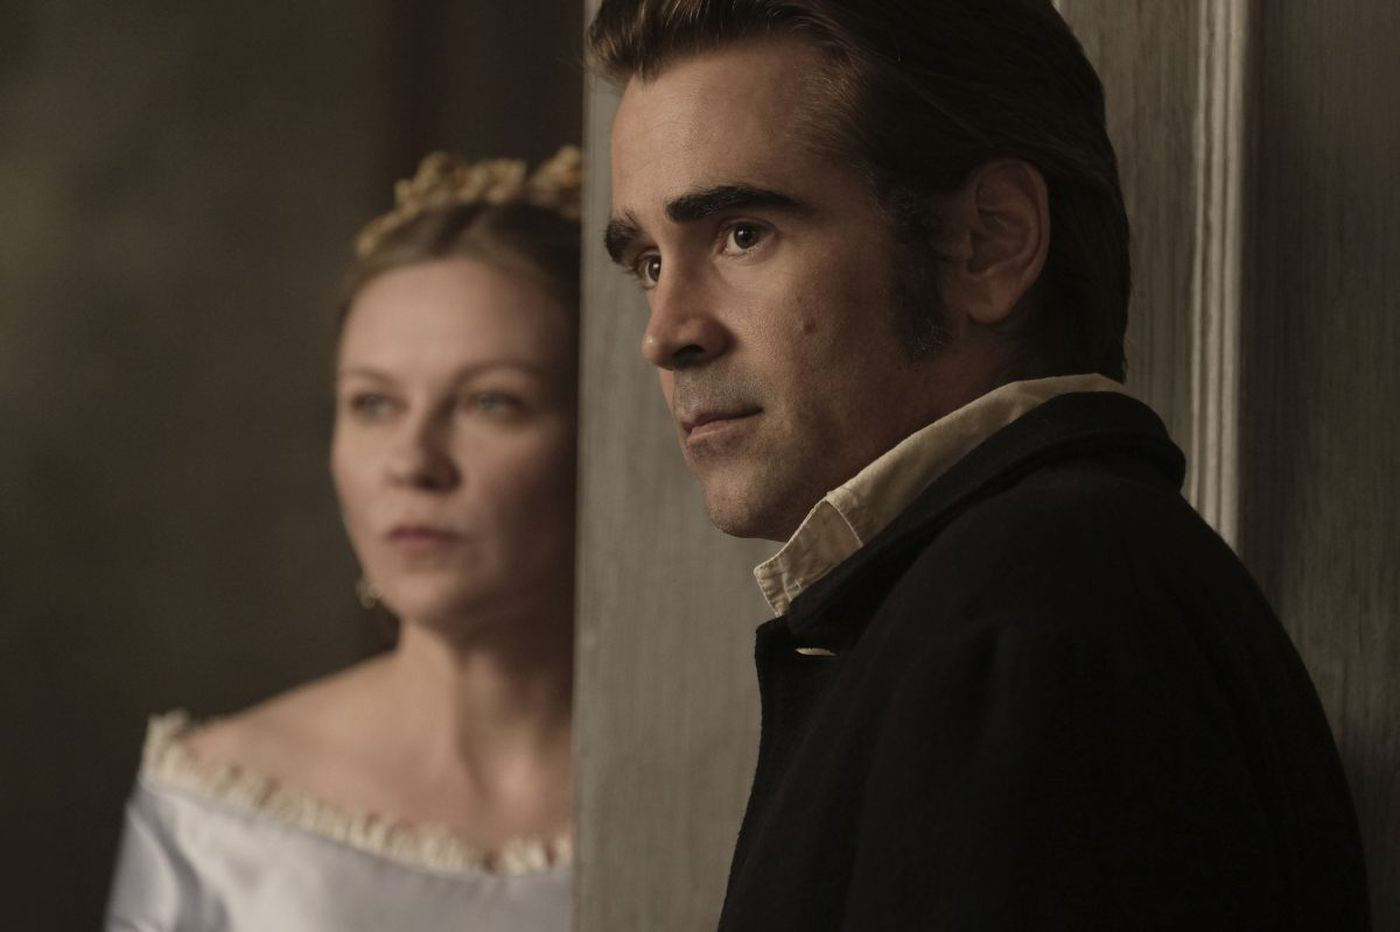 Sofia Coppola's 'The Beguiled': An uncivil war between the sexes